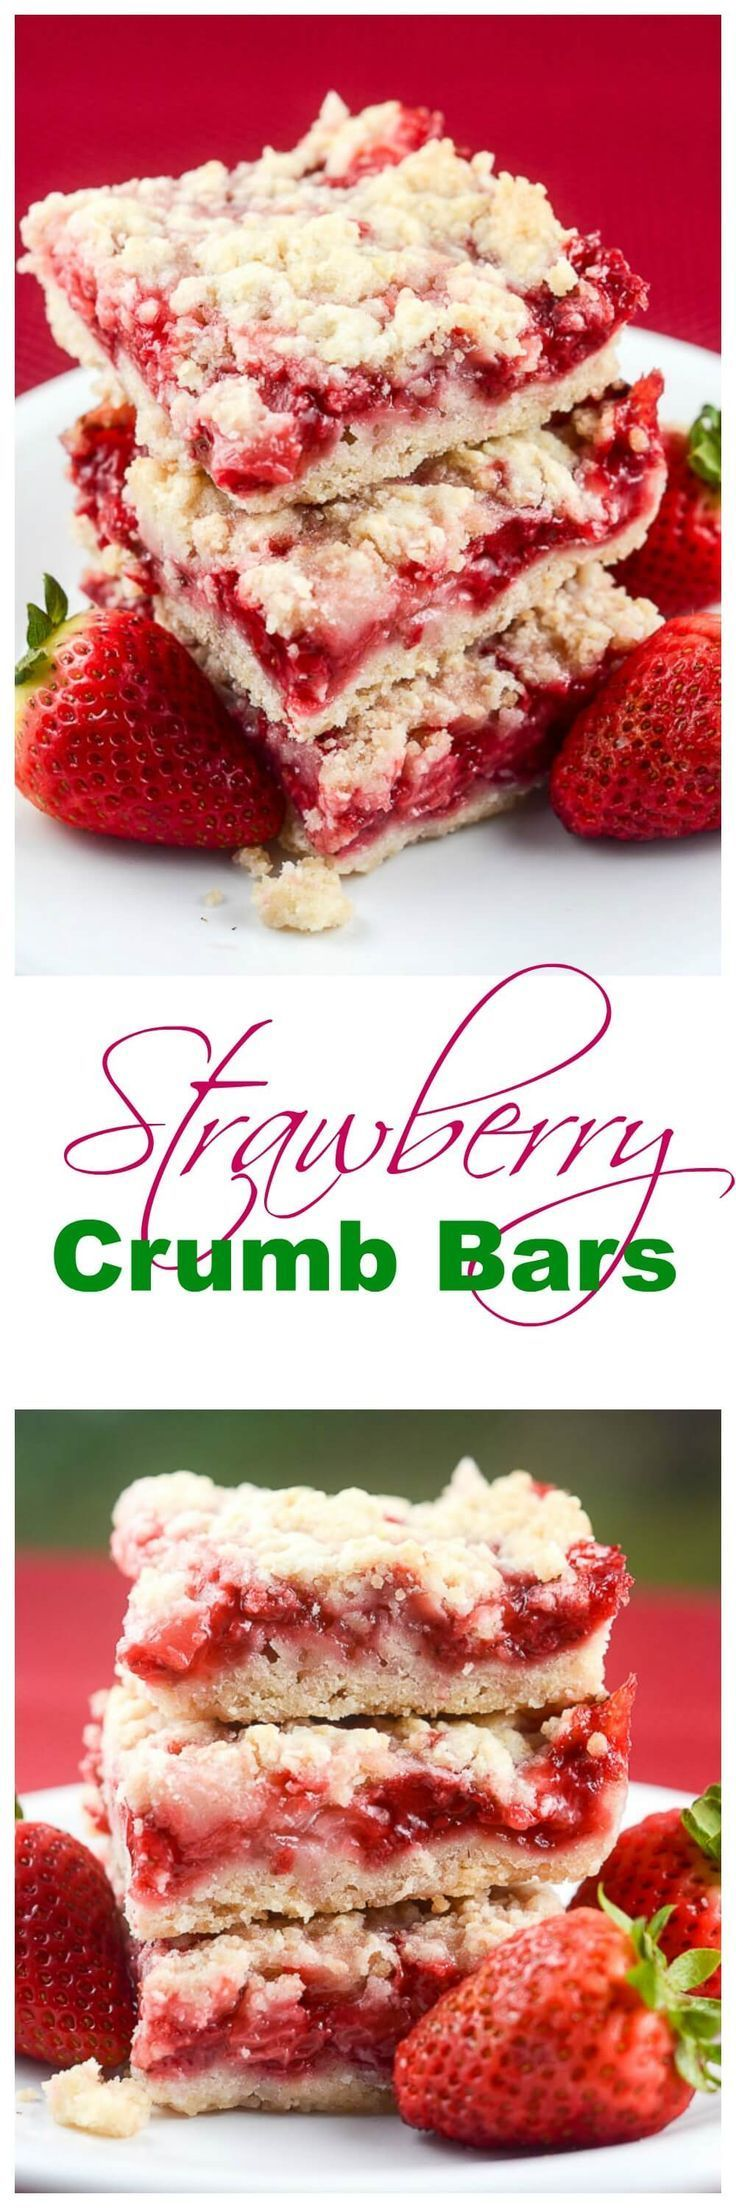 Buttery crust? Sweet #strawberry filling? Crunchy crumble topping? These bars from @flavormosaic have it all